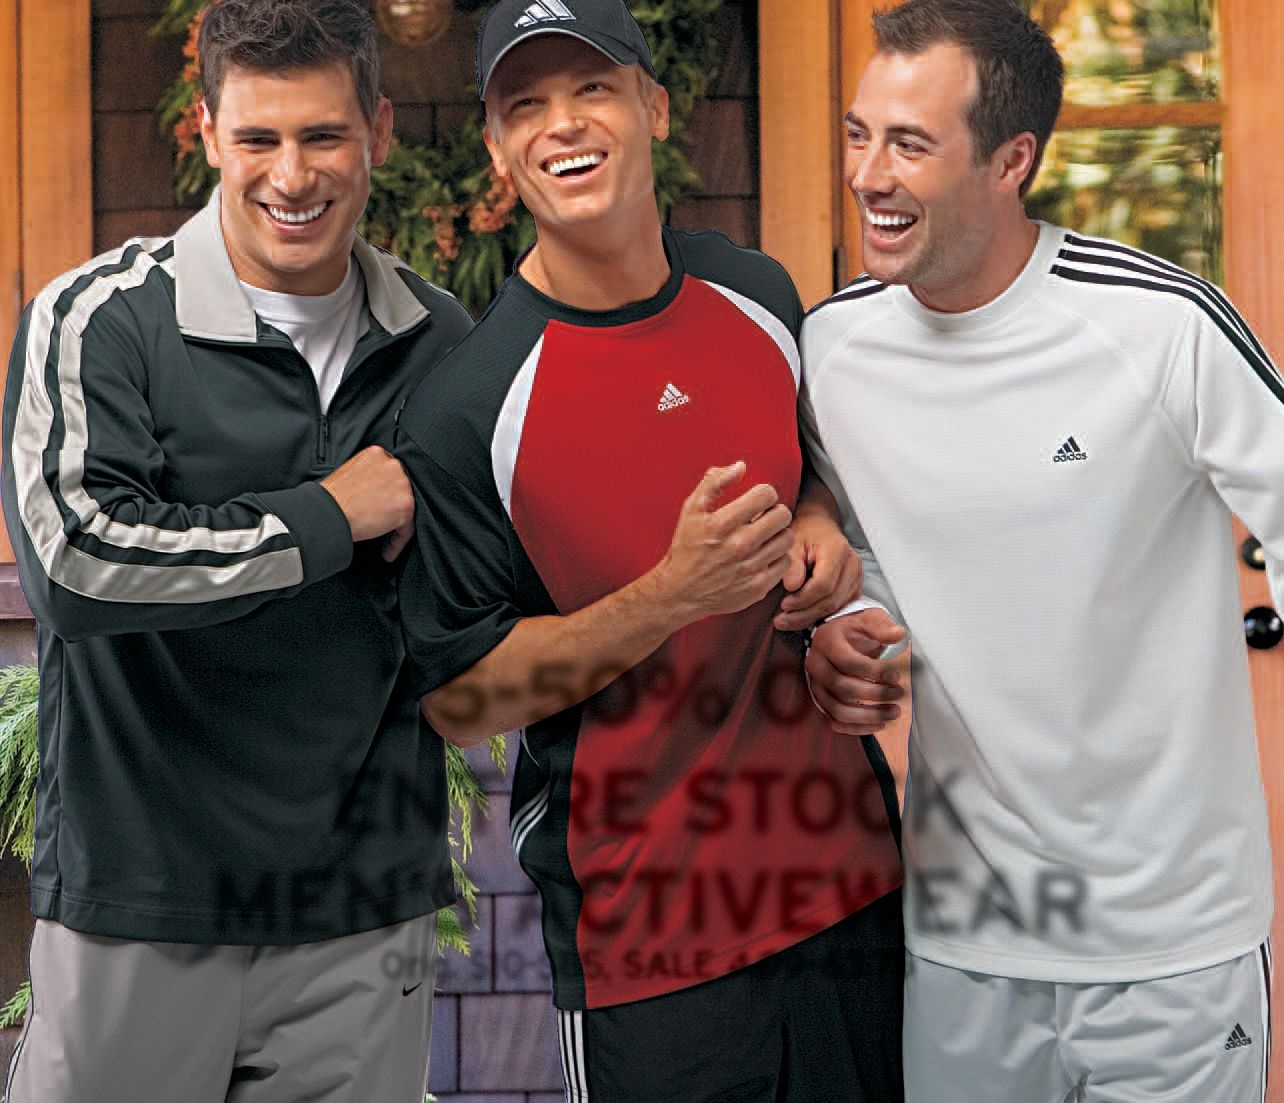 Lee Pappas for Mervyn's (2006) #LeePappas #malemodel #model #StarsModels #StarsModelMgmt #Mervyns #smile #buddies